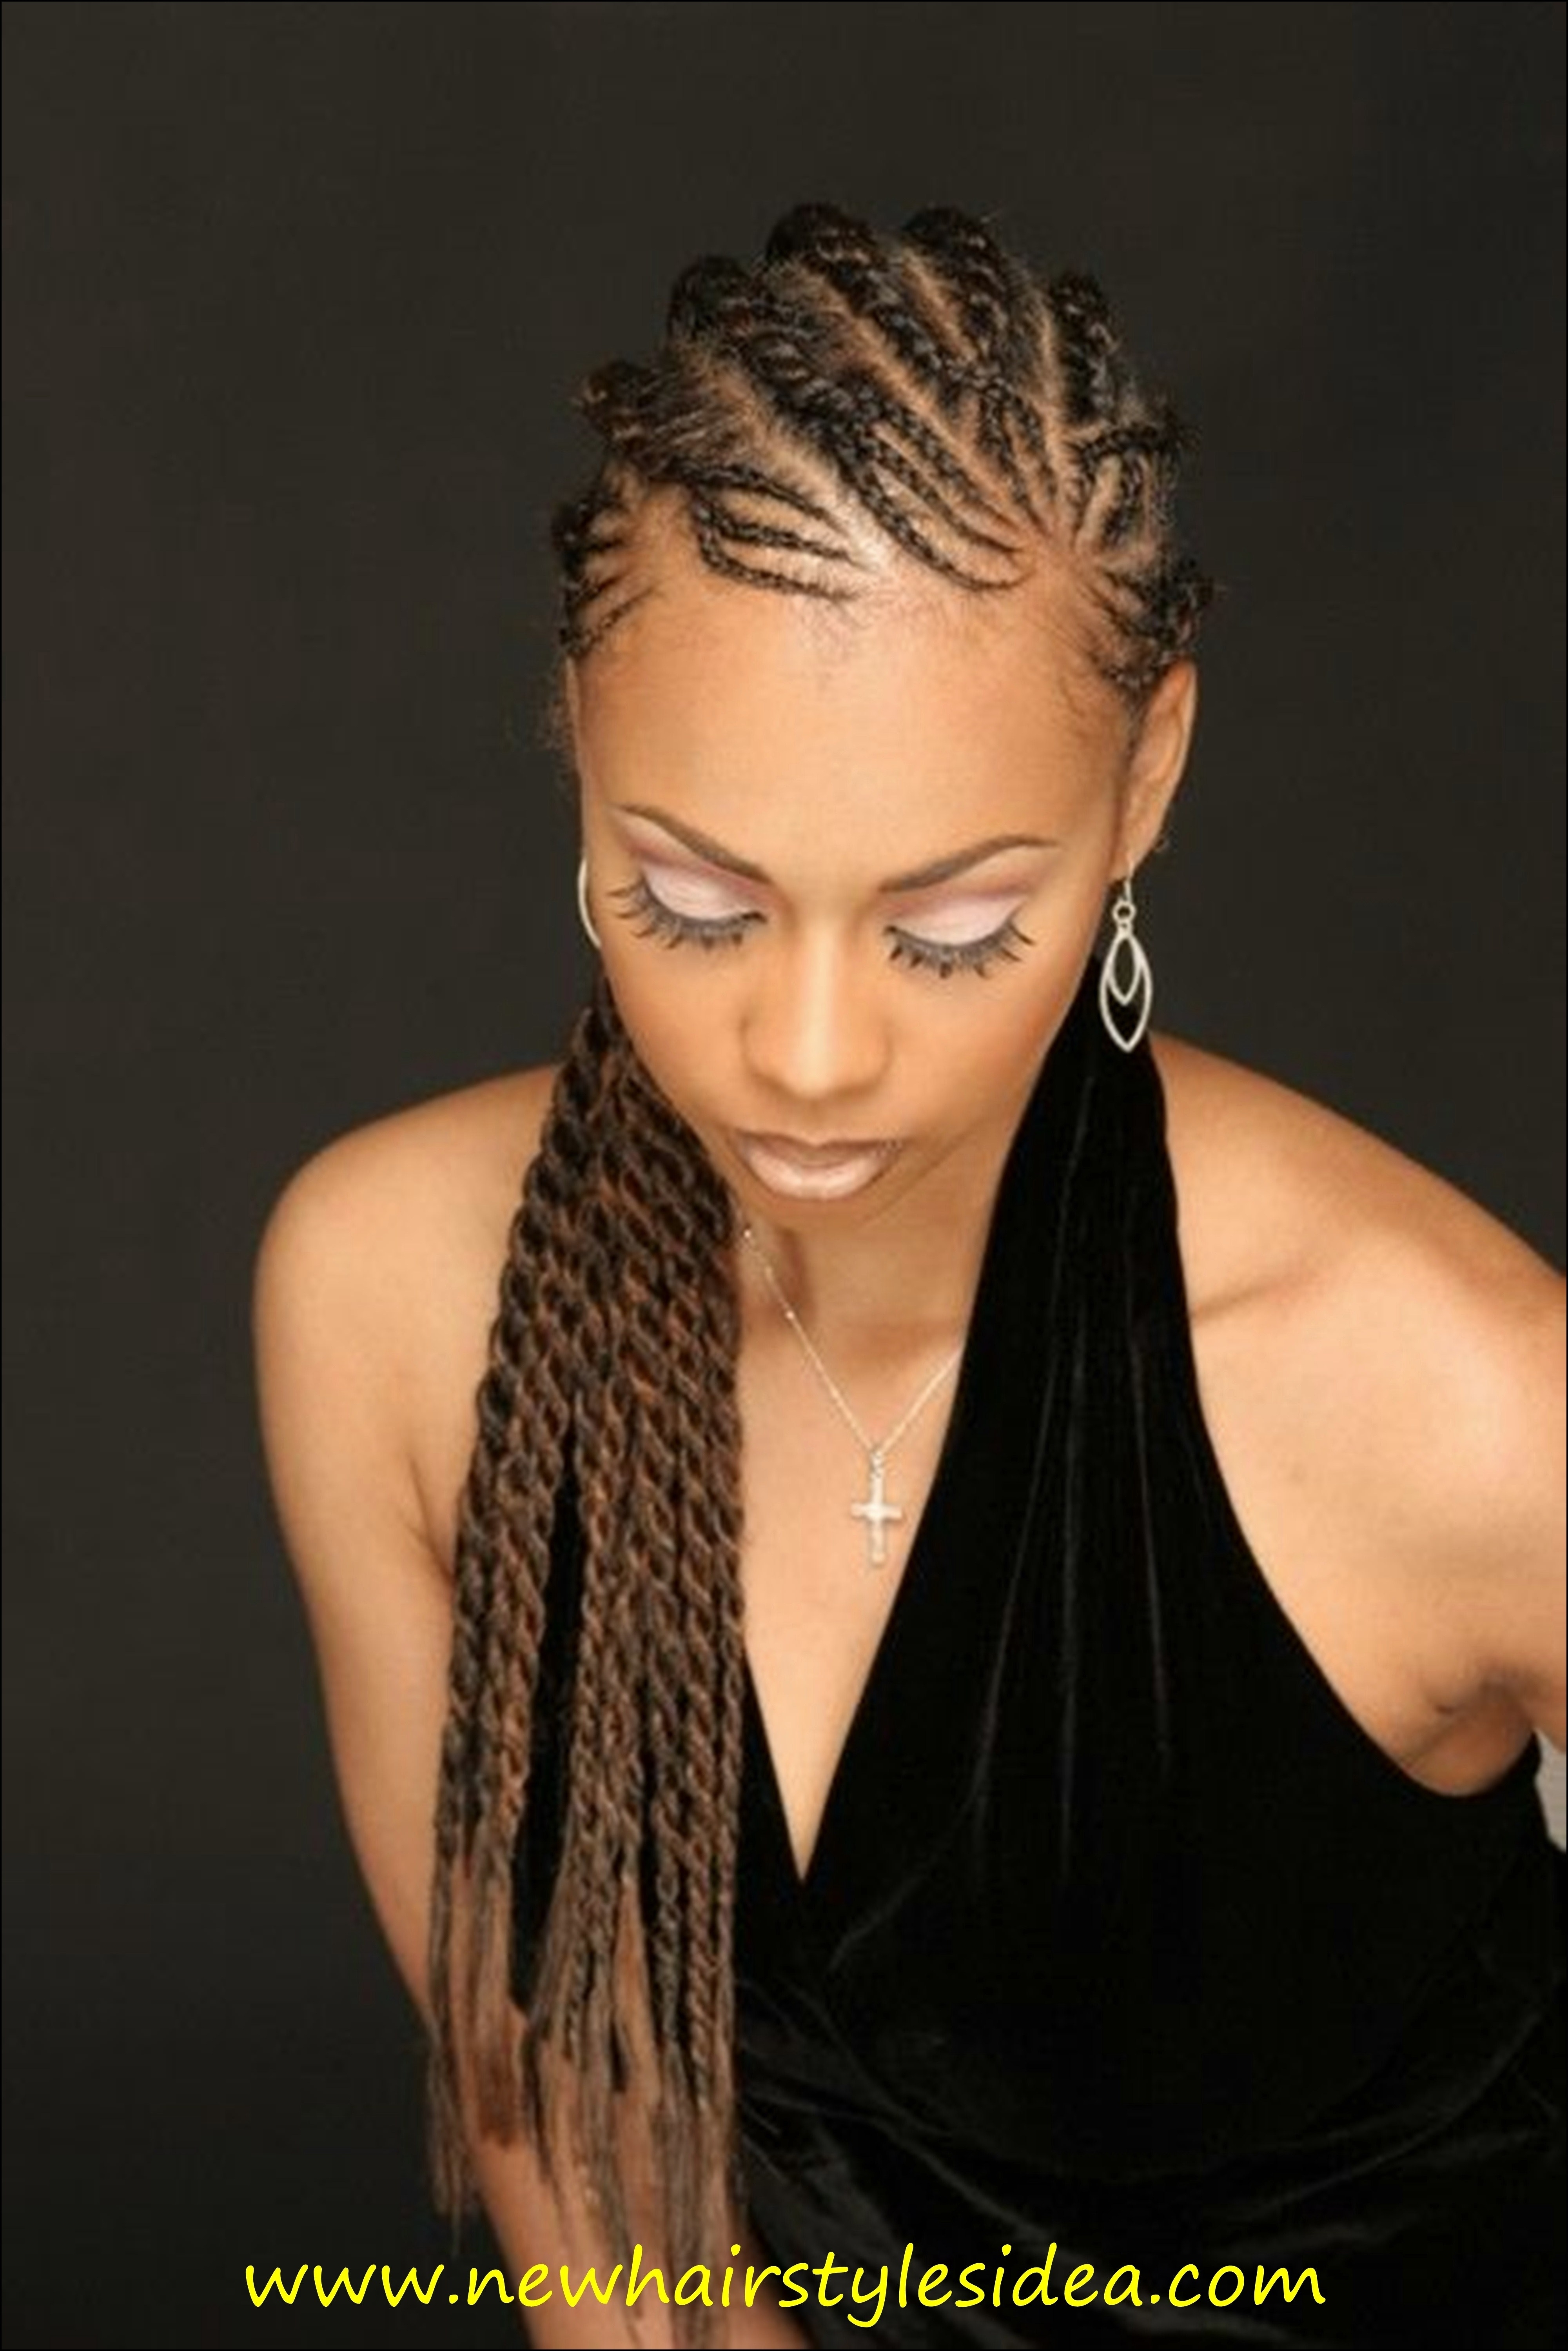 Cornrow Hairstyles 2016 – Best Hairstyle 2018 Regarding Fashionable Cornrows Hairstyles For Square Faces (View 7 of 15)